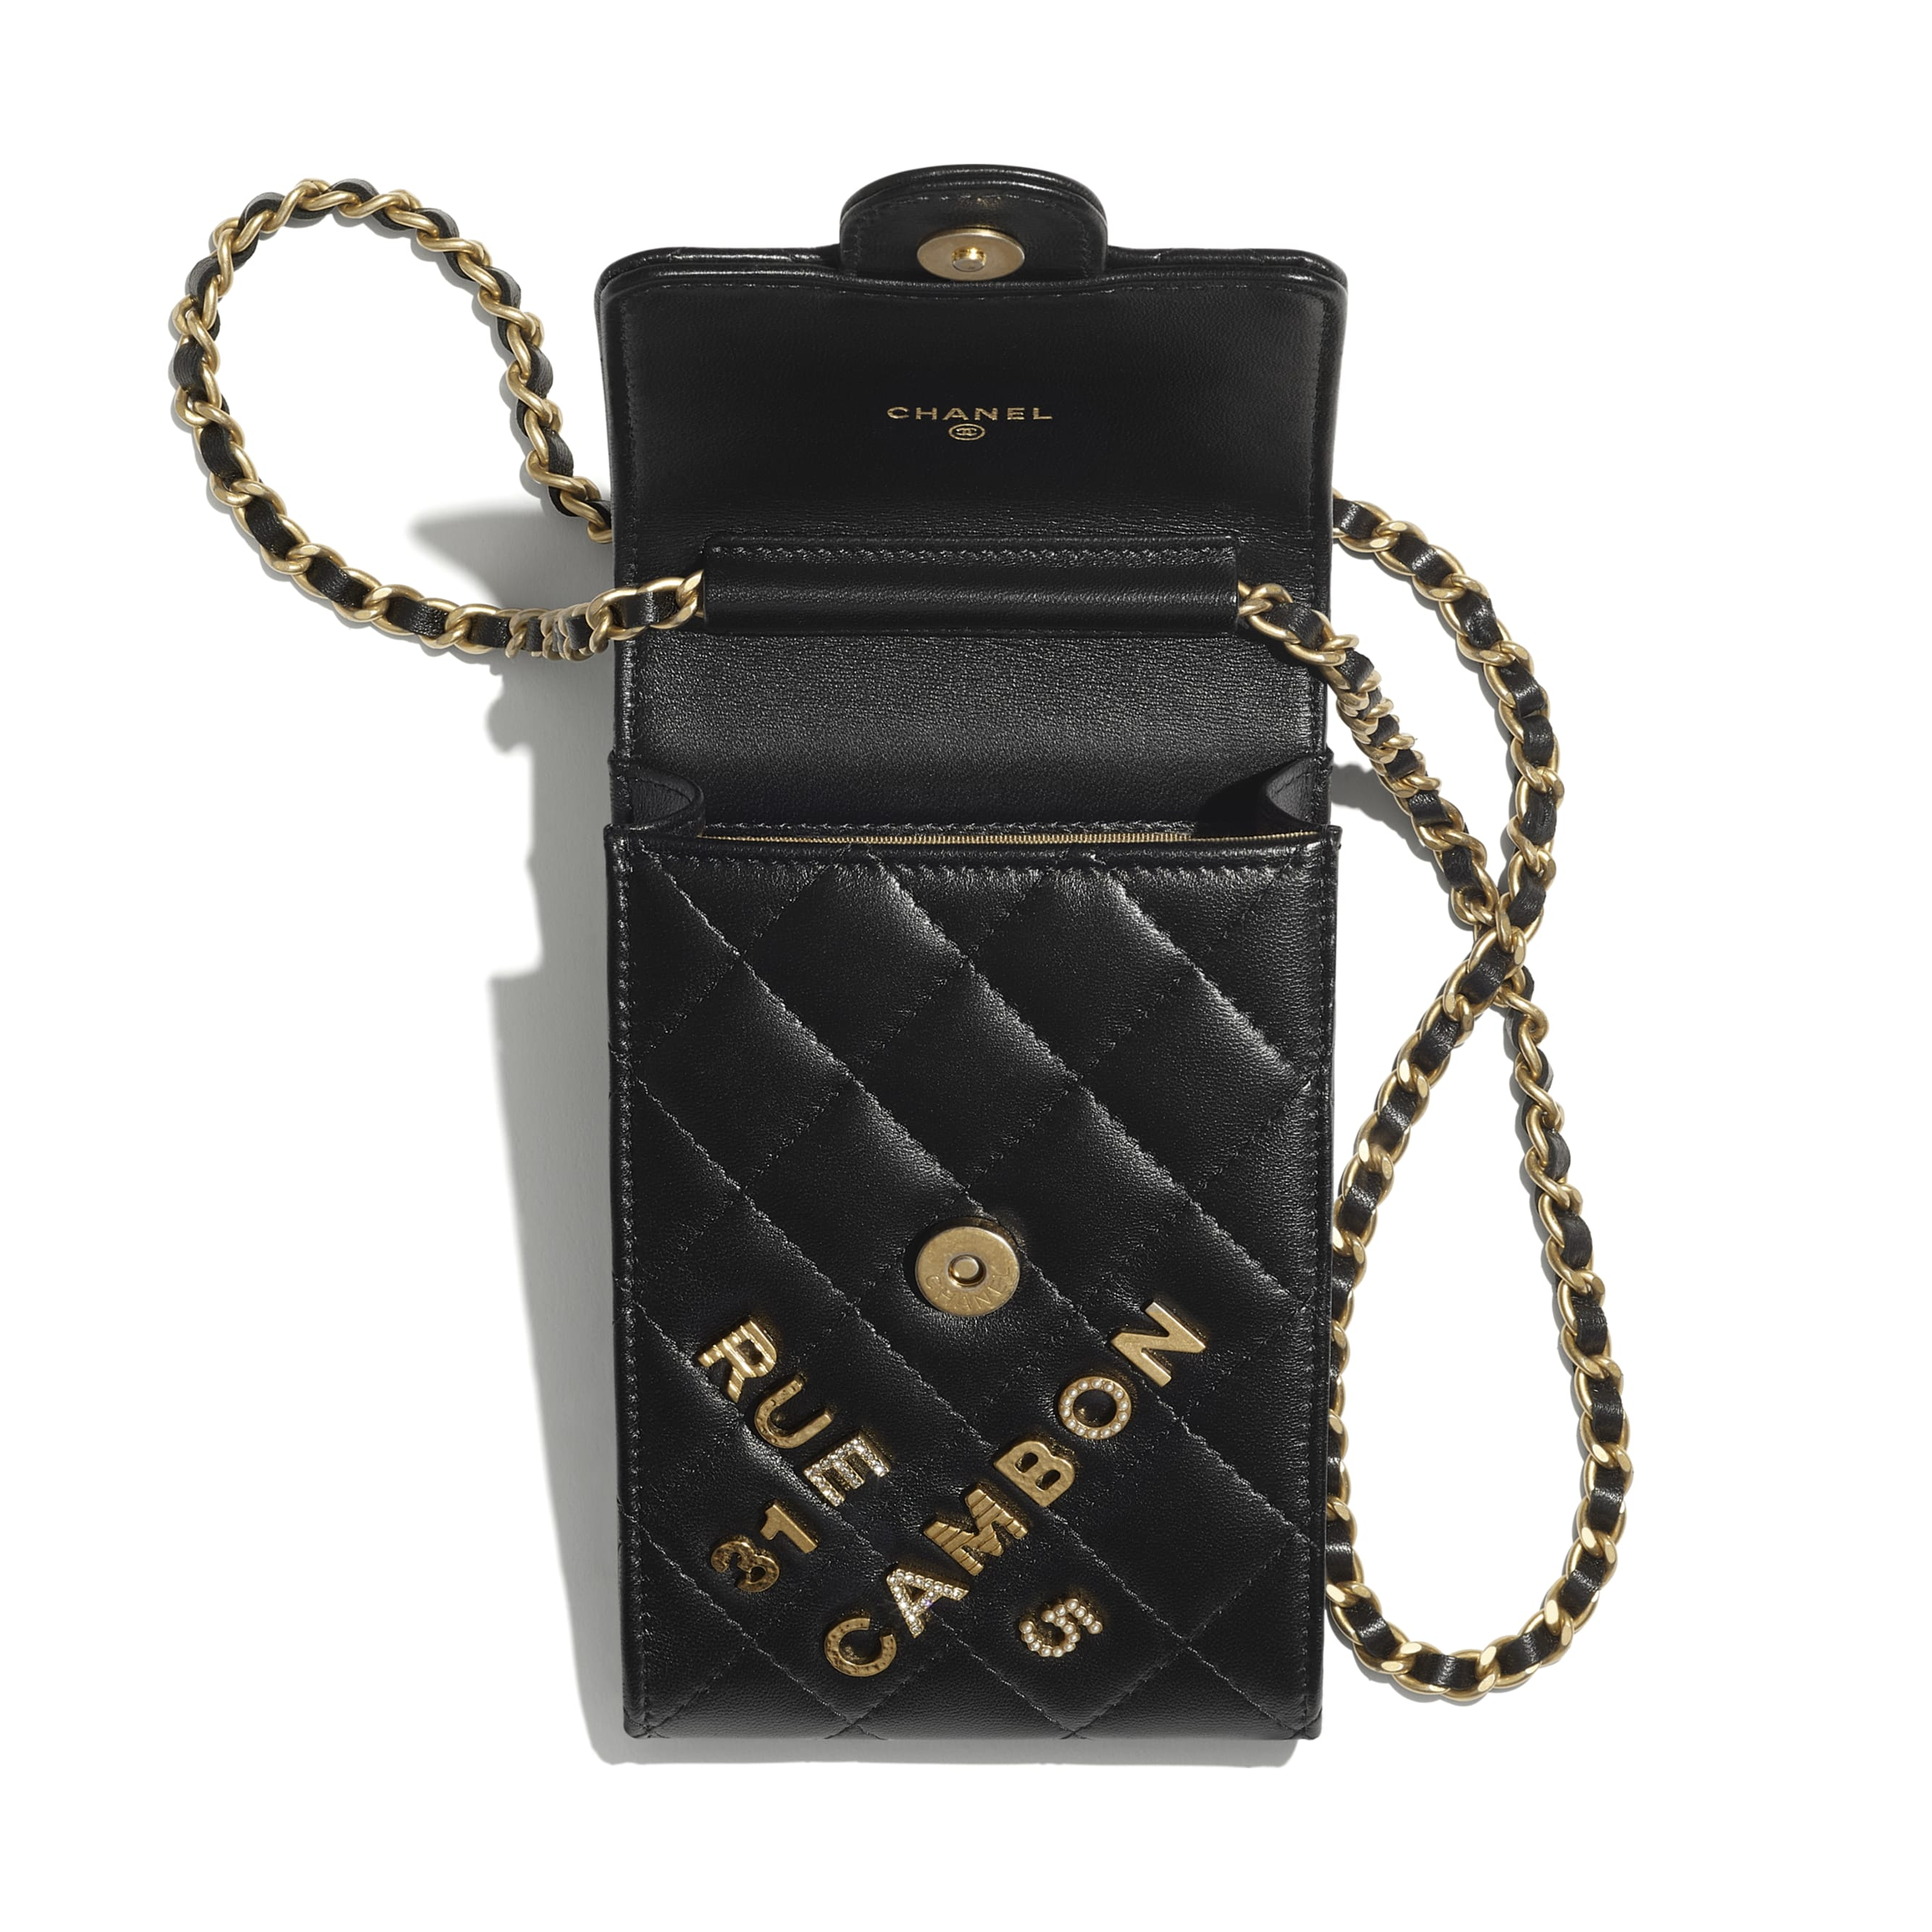 Phone Holder with Chain - Black - Lambskin & Gold-Tone Metal - CHANEL - Alternative view - see standard sized version